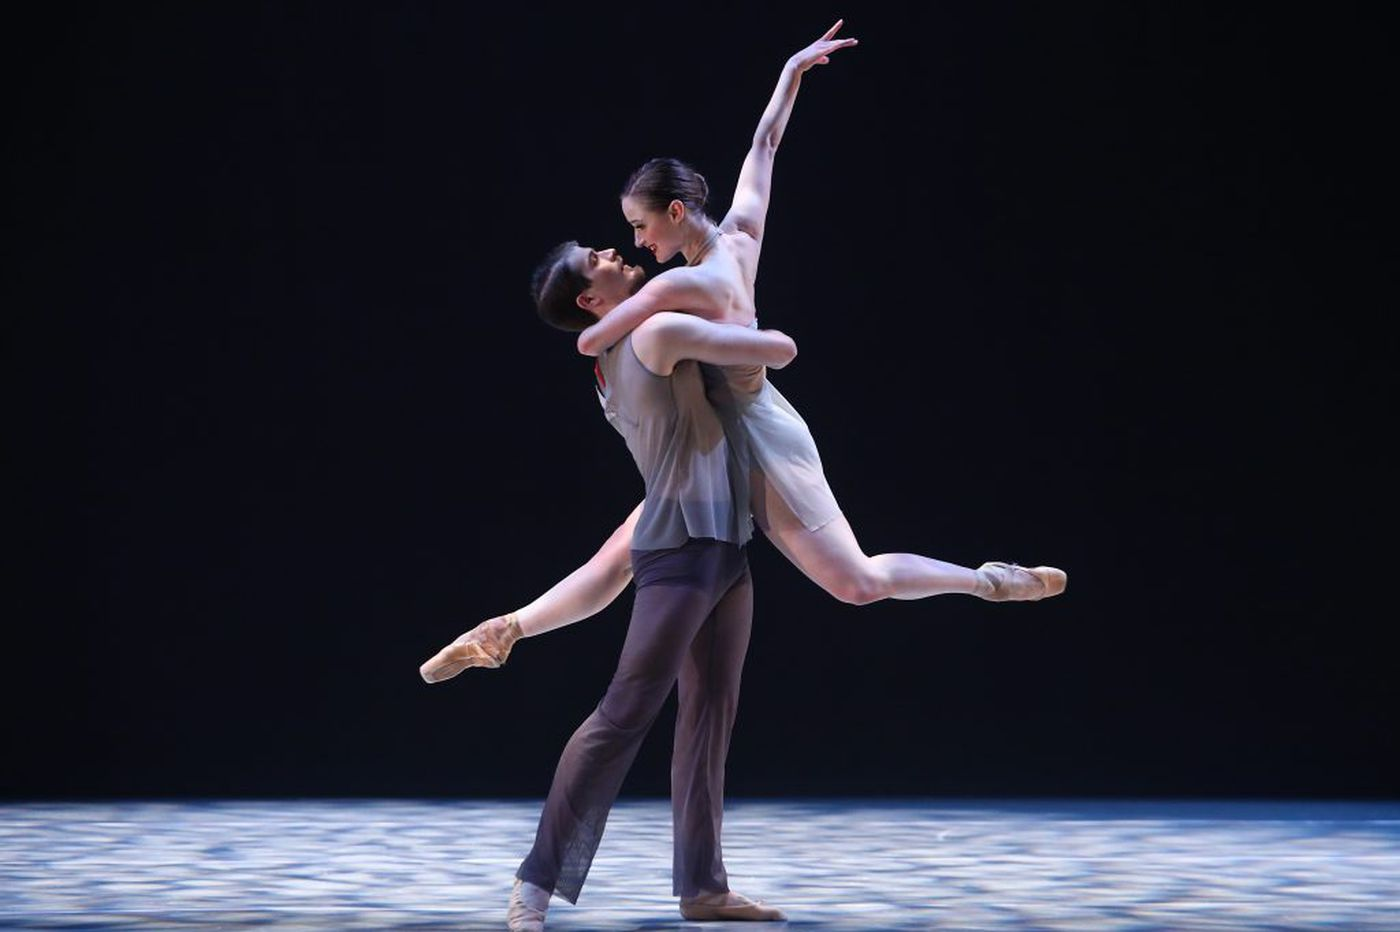 What's this, now? BalletX weighs in on Trump?